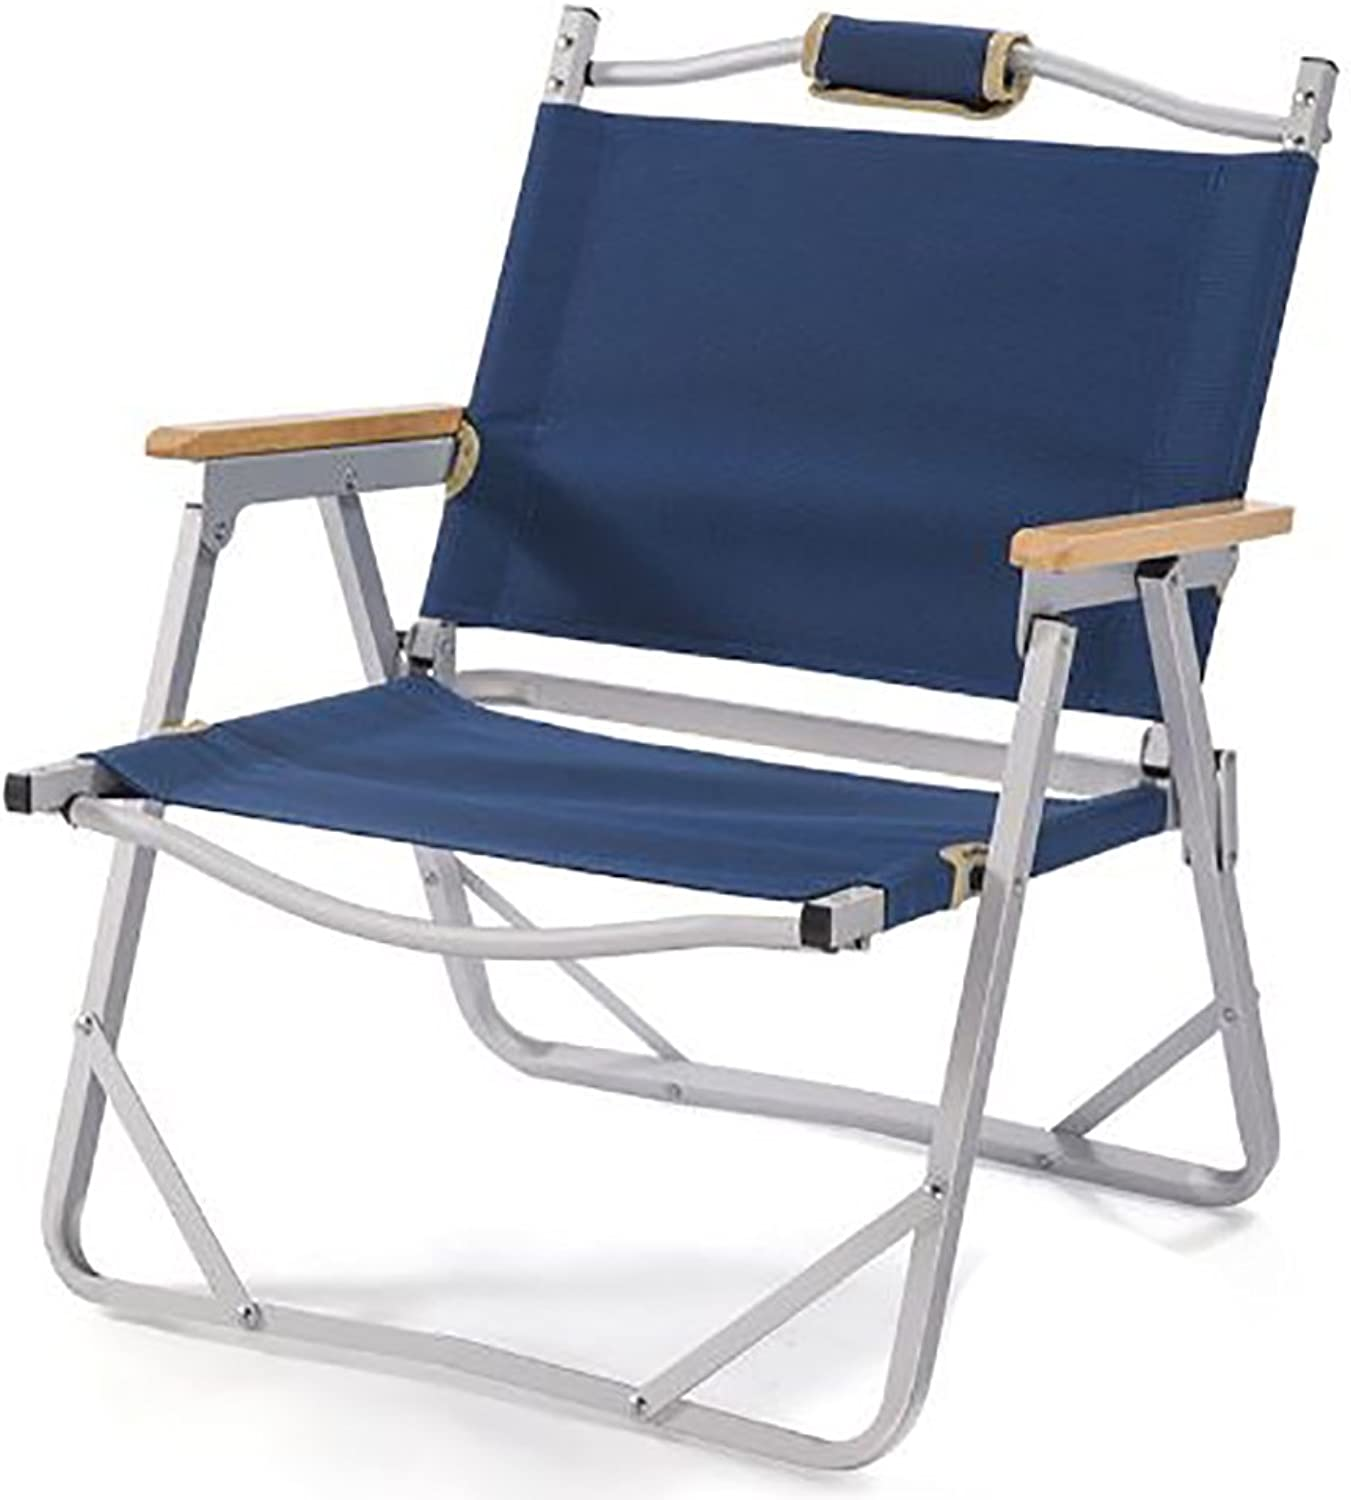 Folding Chairs, Strong Bearing Capacity, Durable and Stable